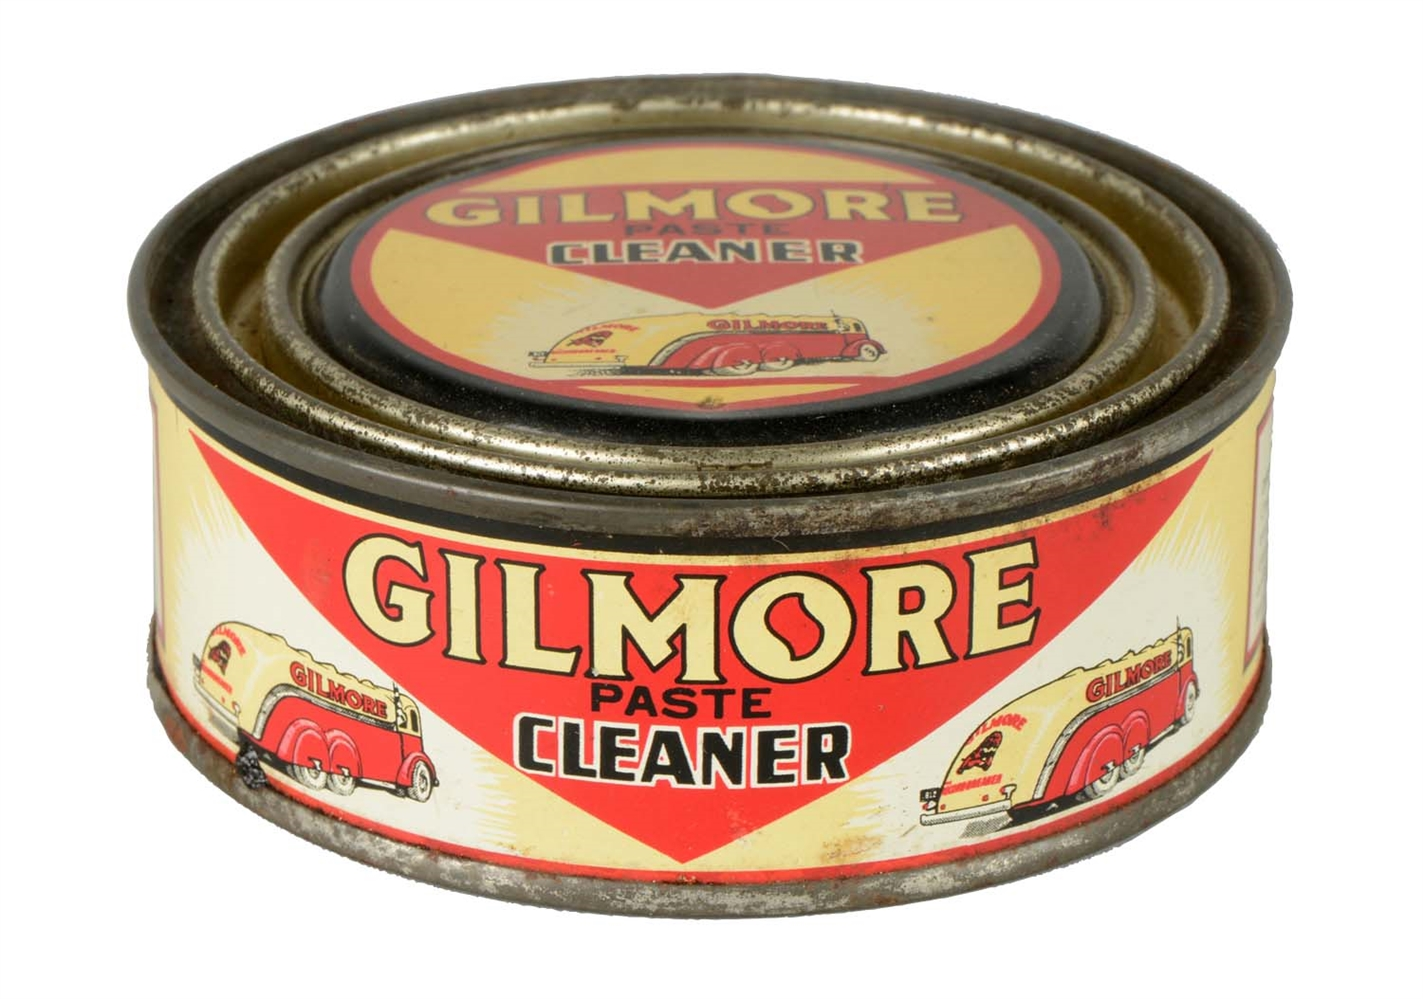 Rare Gilmore Wax Paste Cleaner Can.